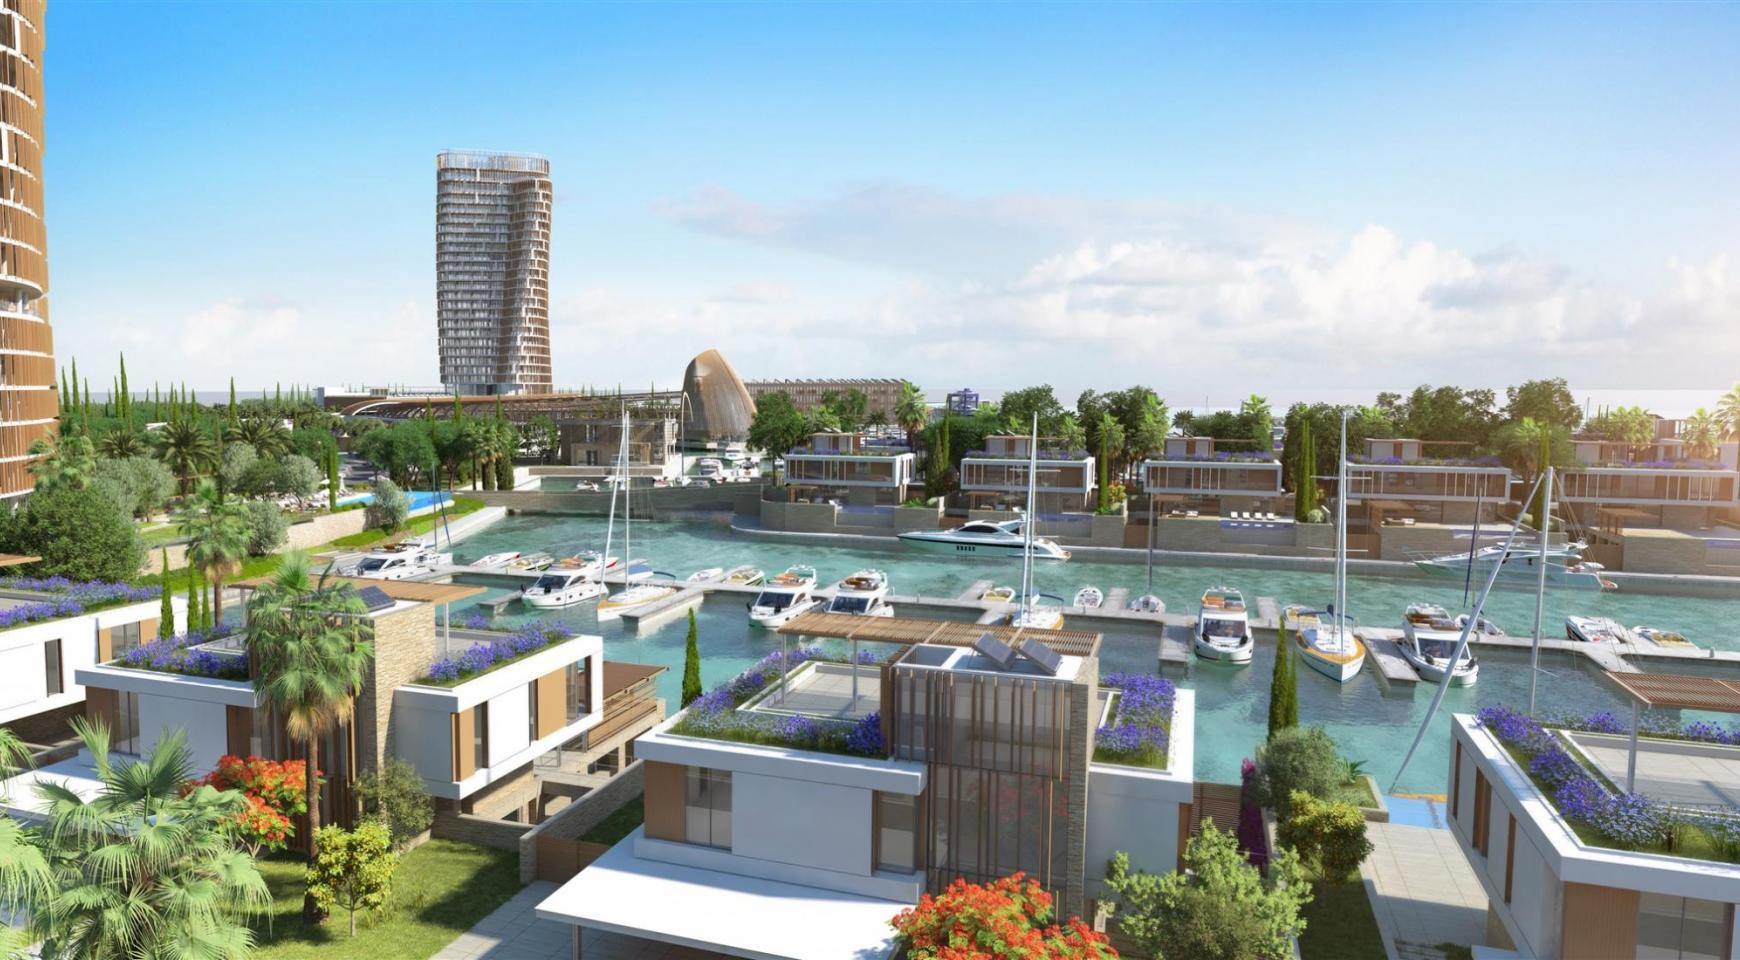 2 Bedroom Apartment in an Exclusive Project by the Sea - 2